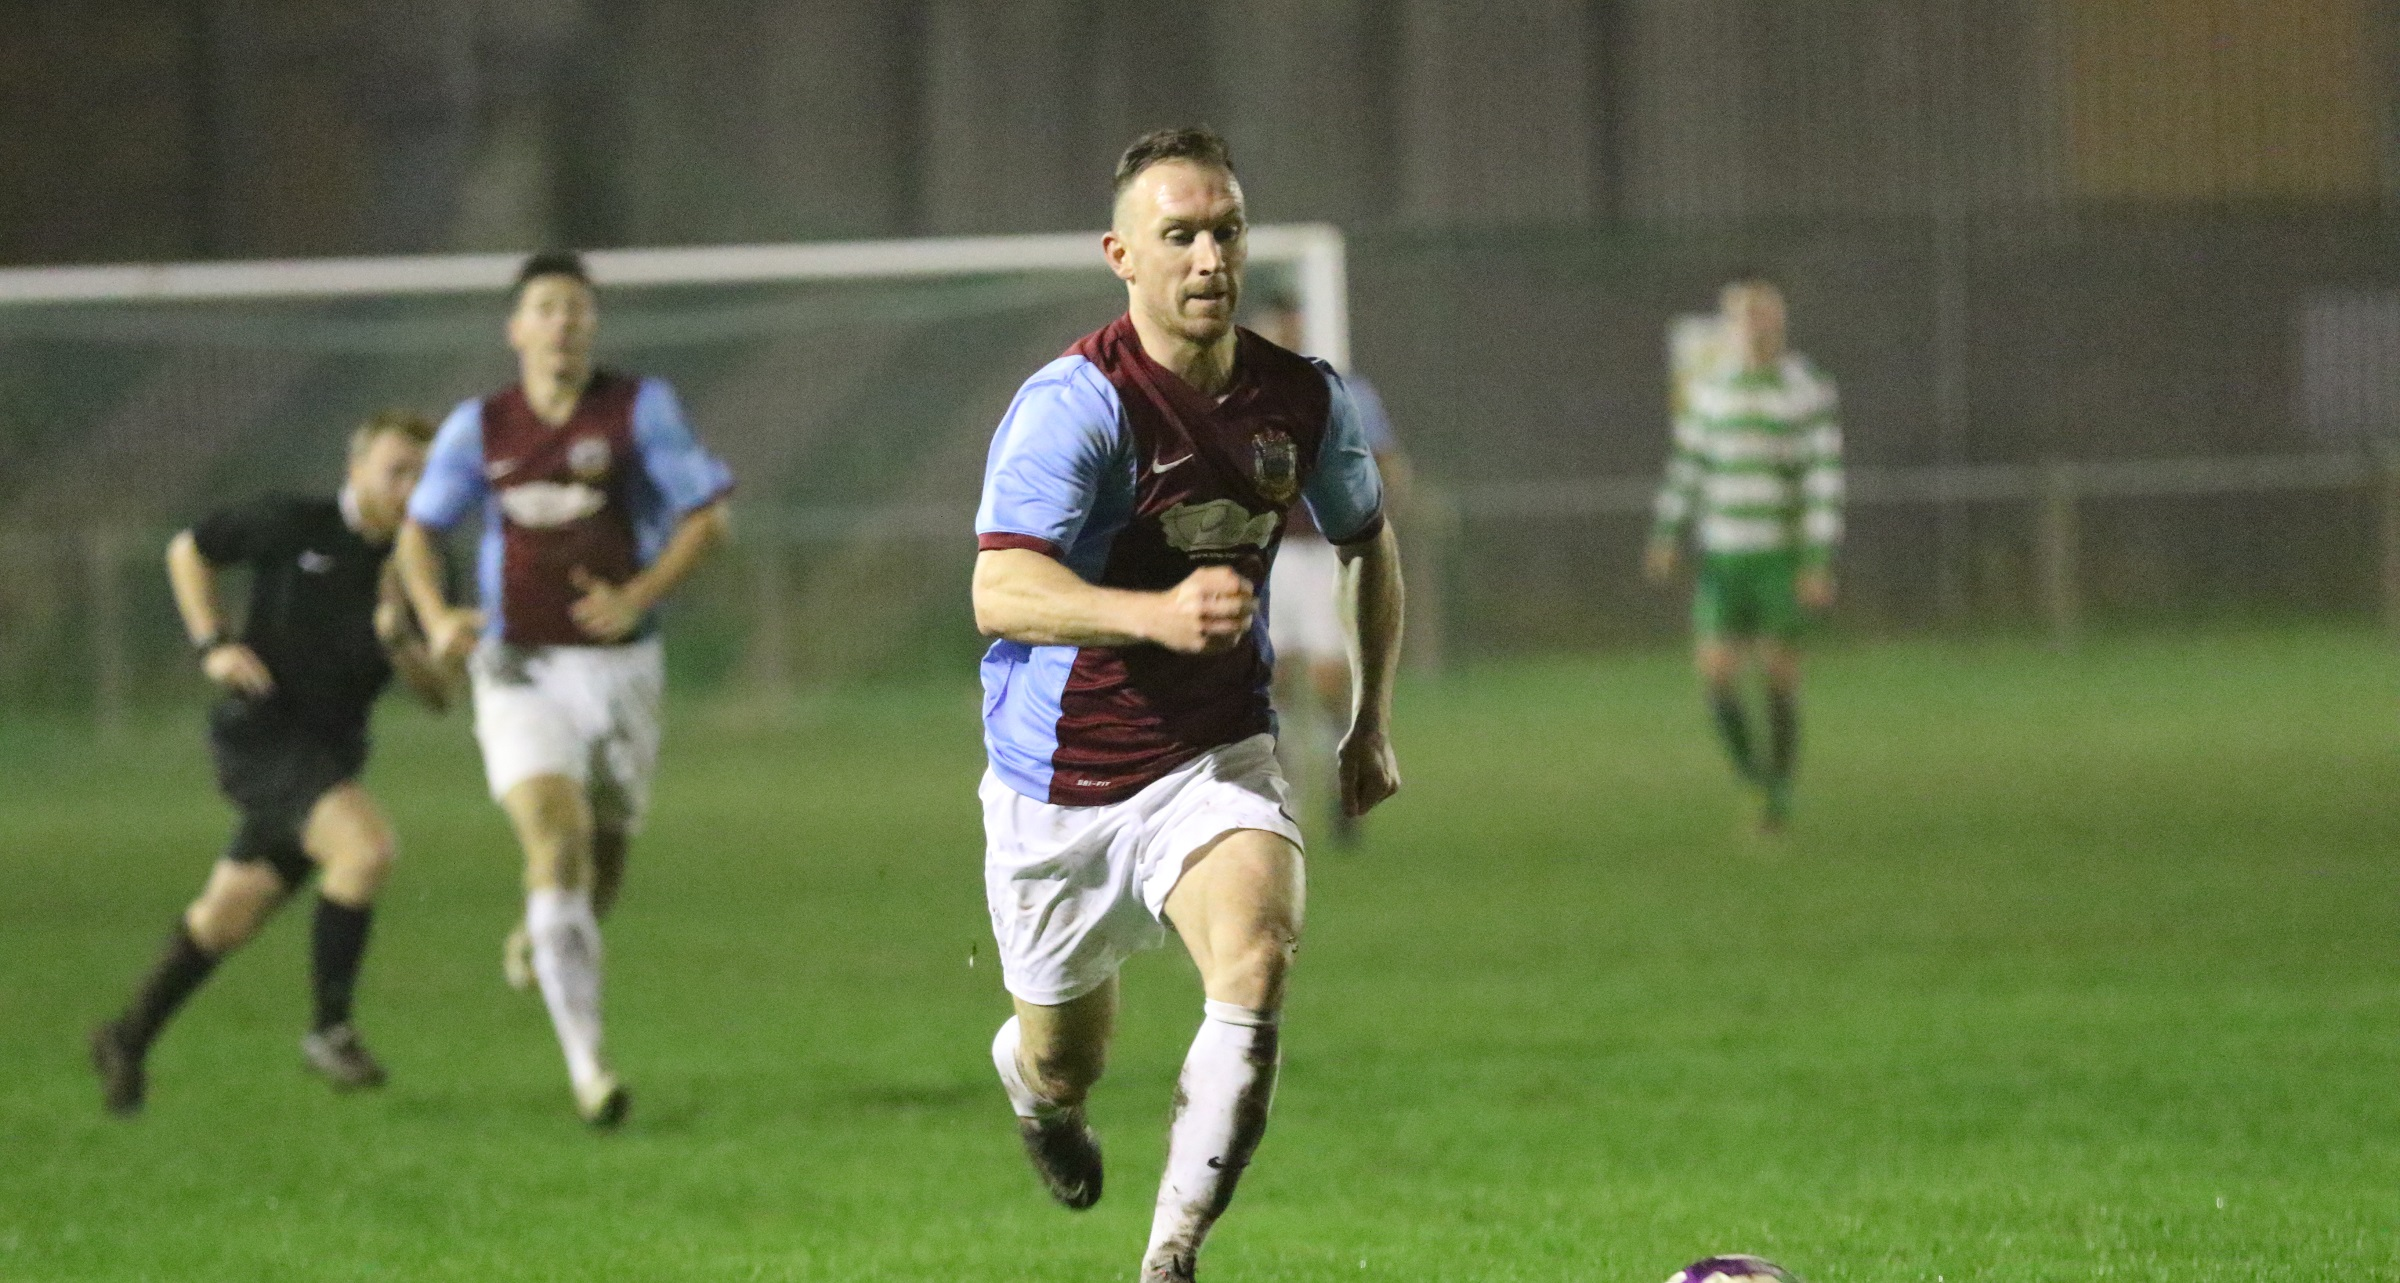 HIGHLIGHTS: Birtley Town 1-3 South Shields